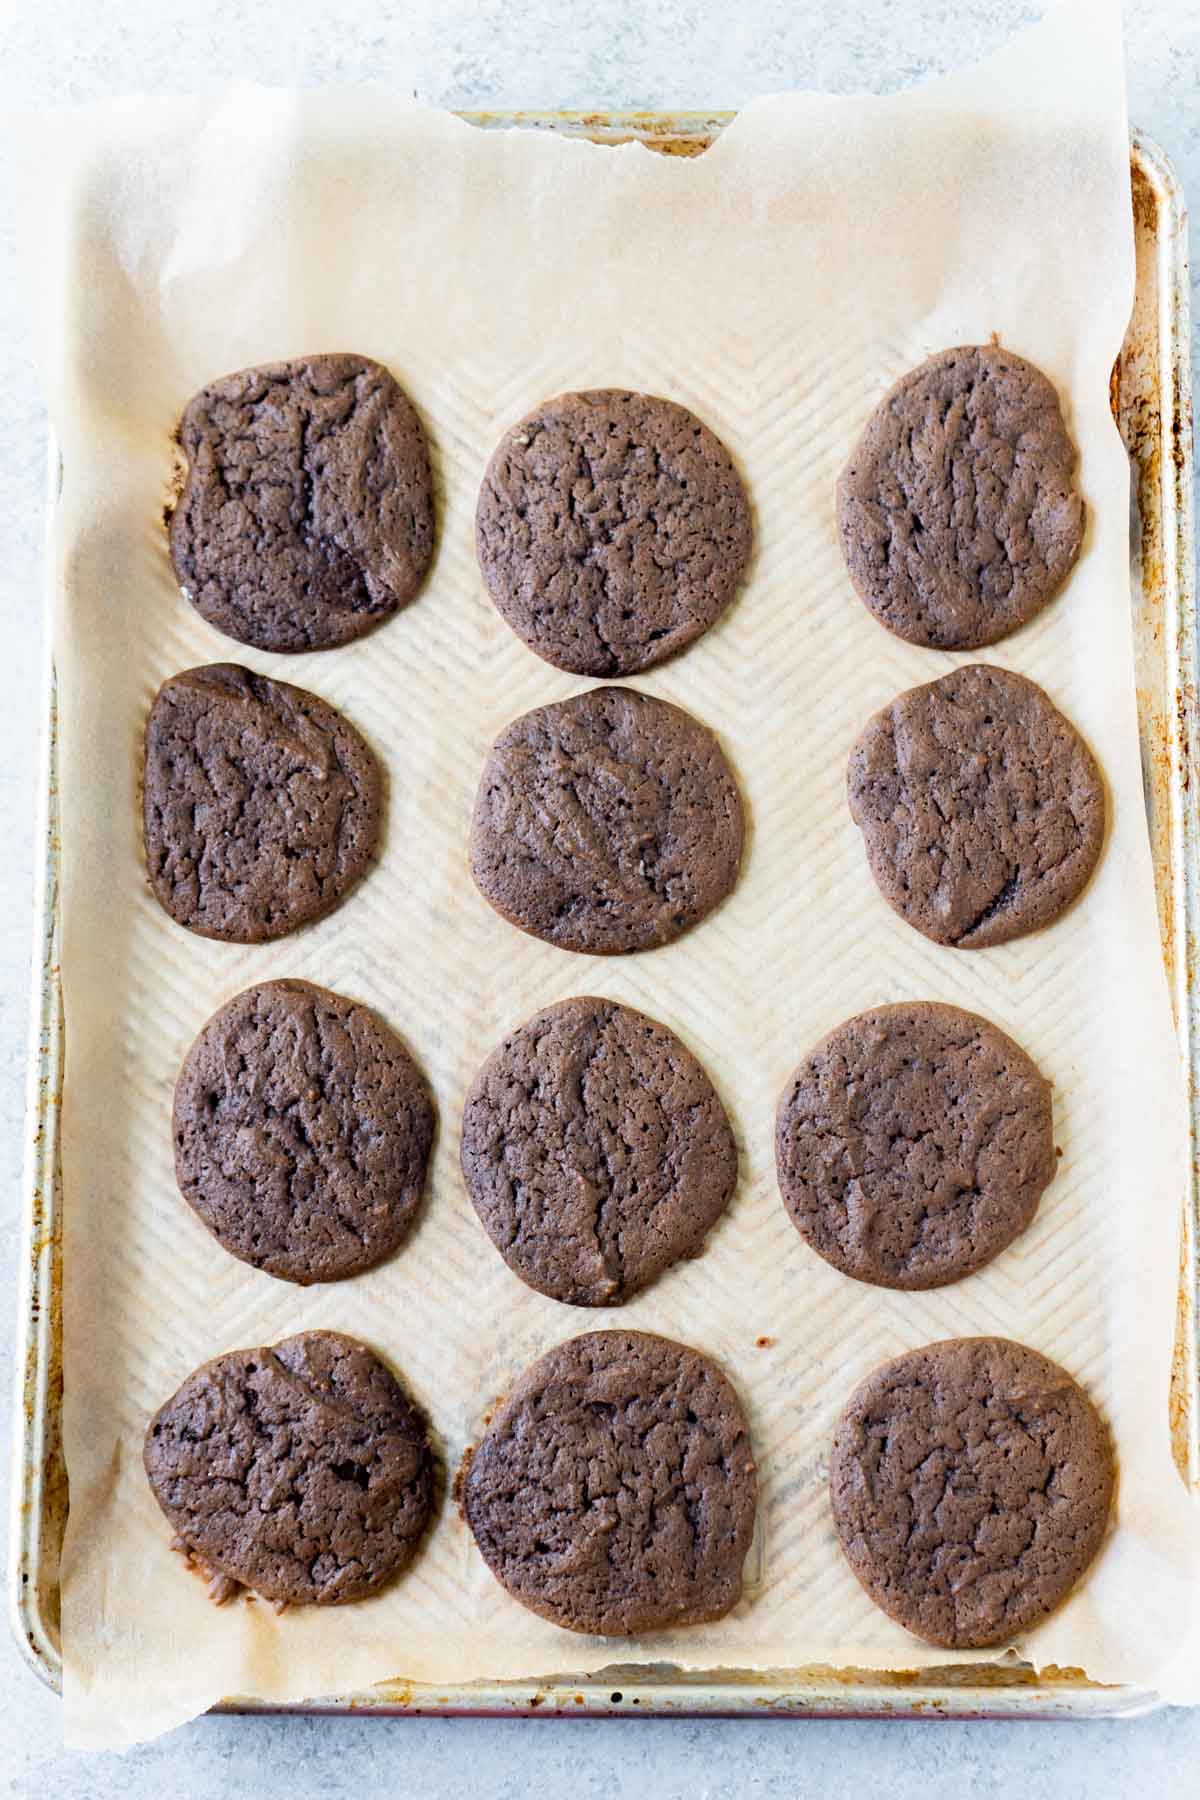 Chocolate whoopie pie cookies on a baking sheet cooling